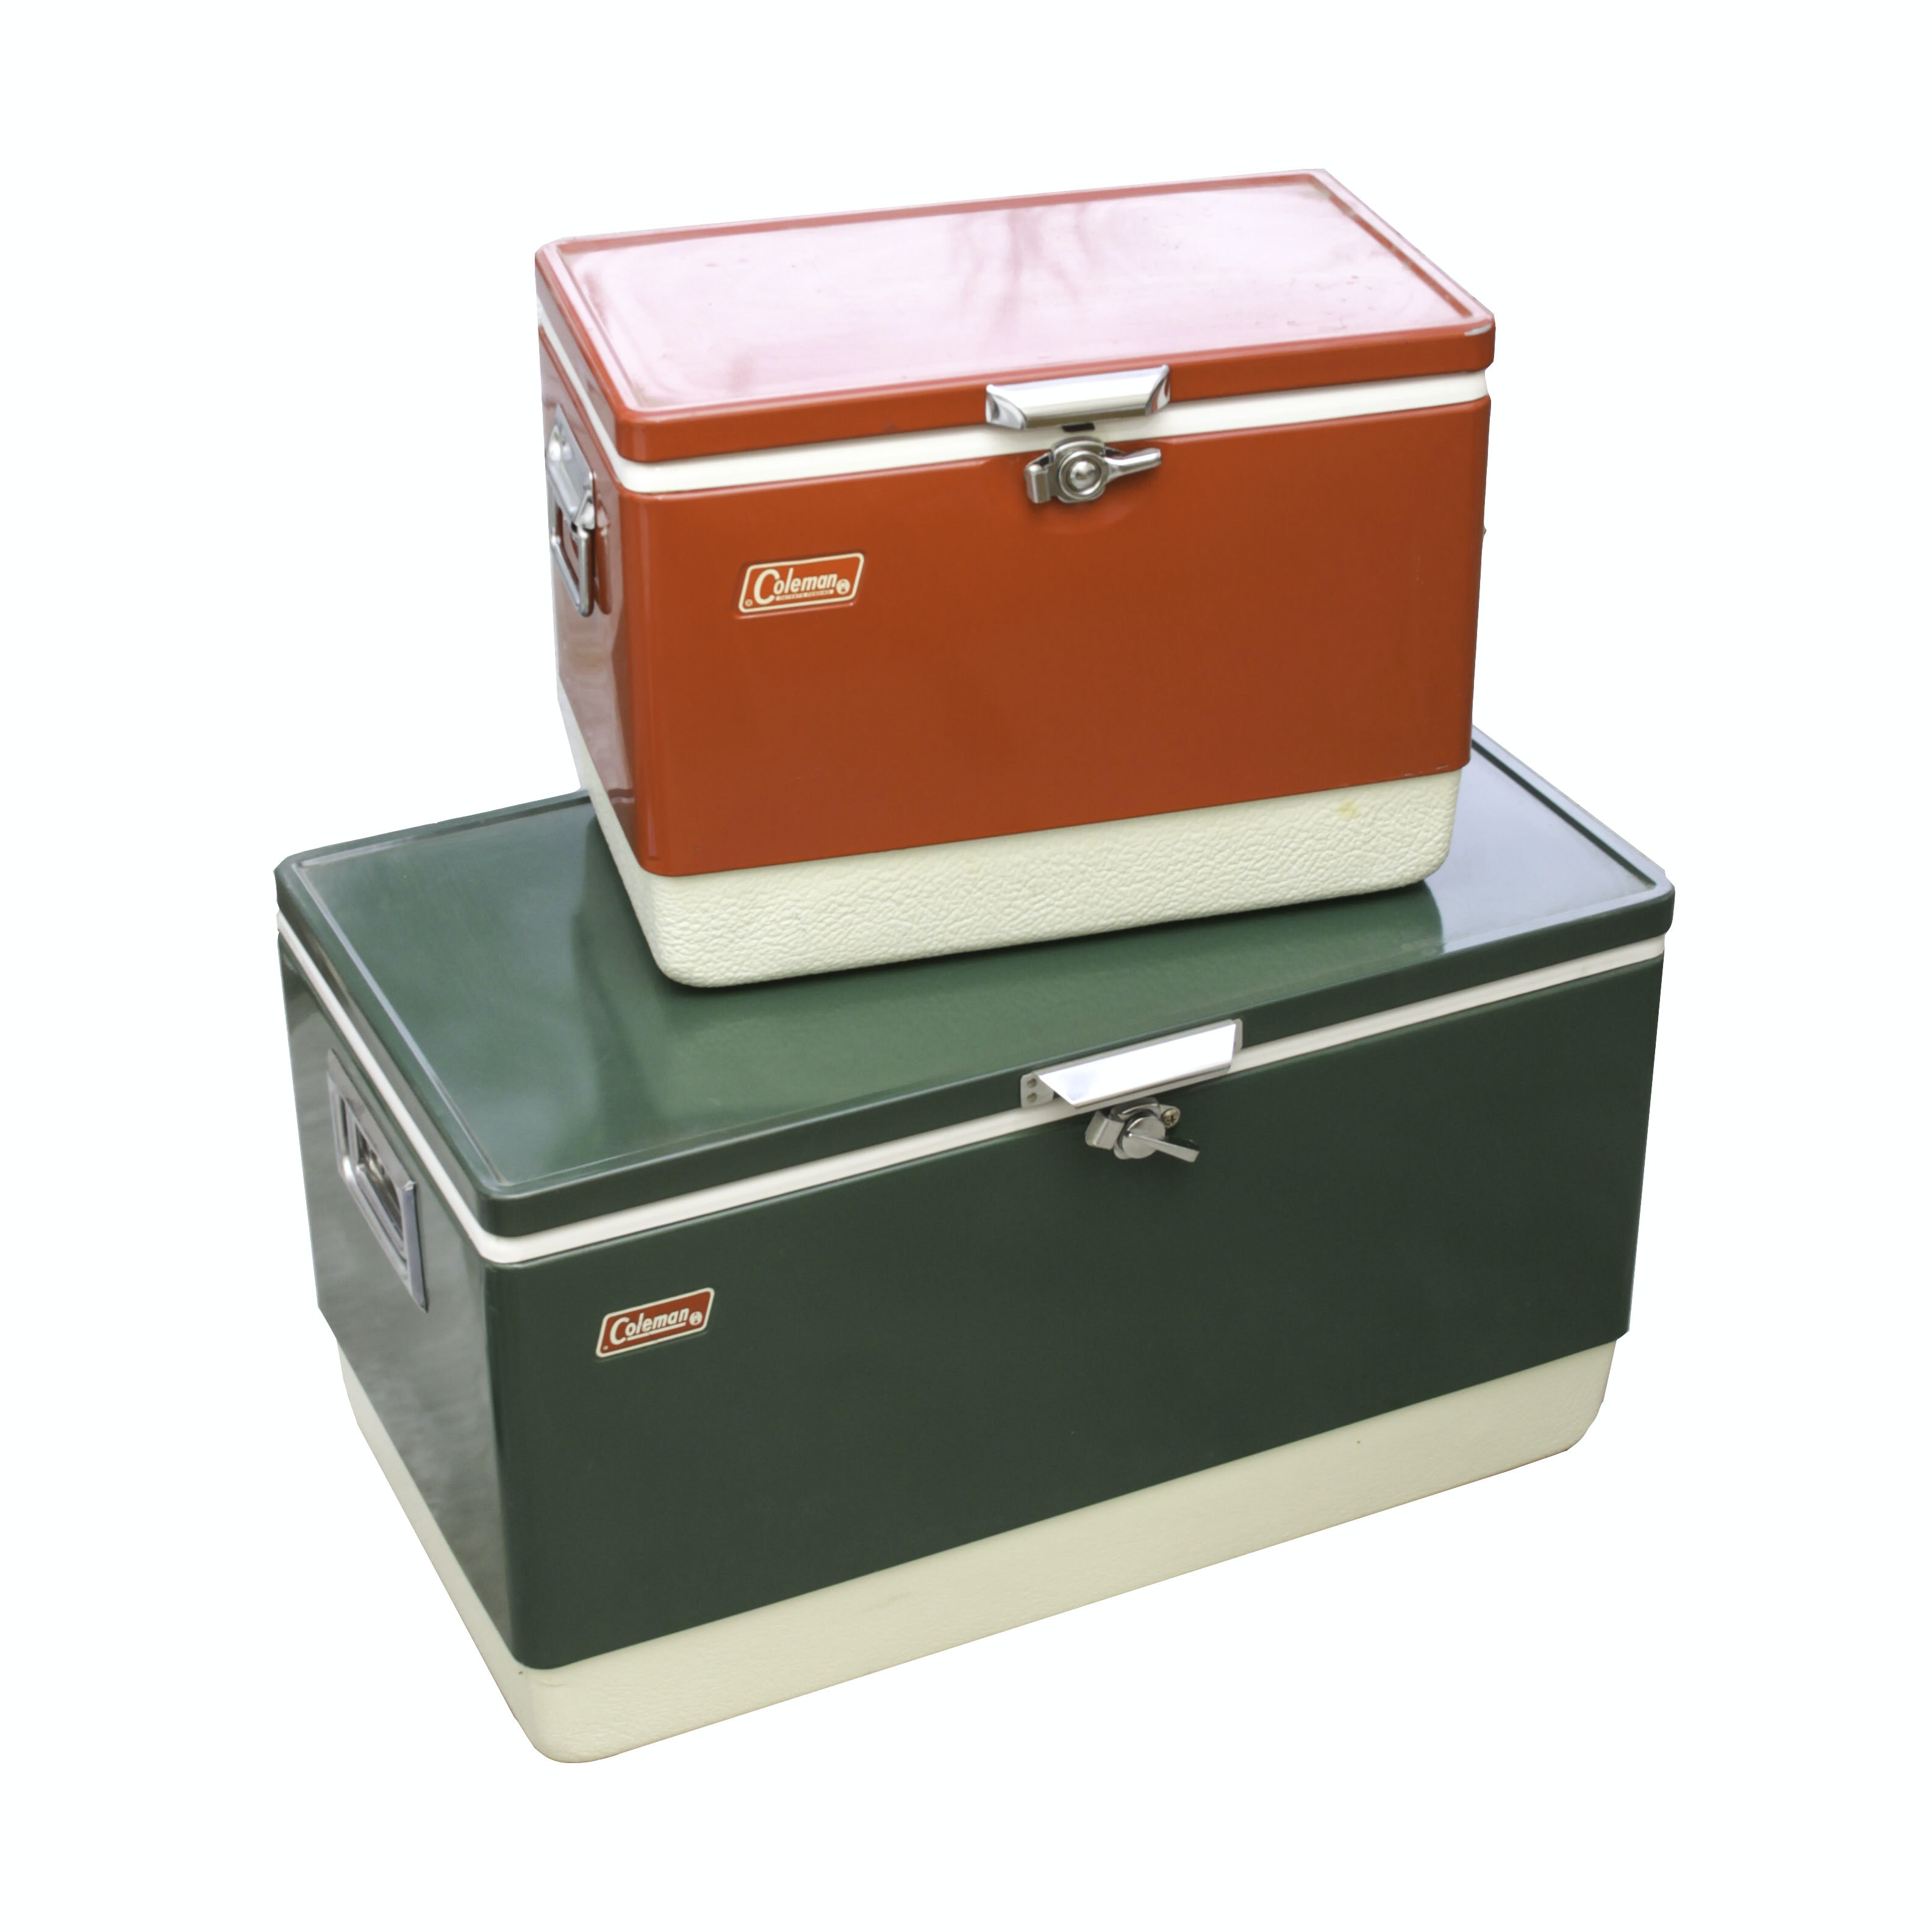 Pair of Coleman Coolers